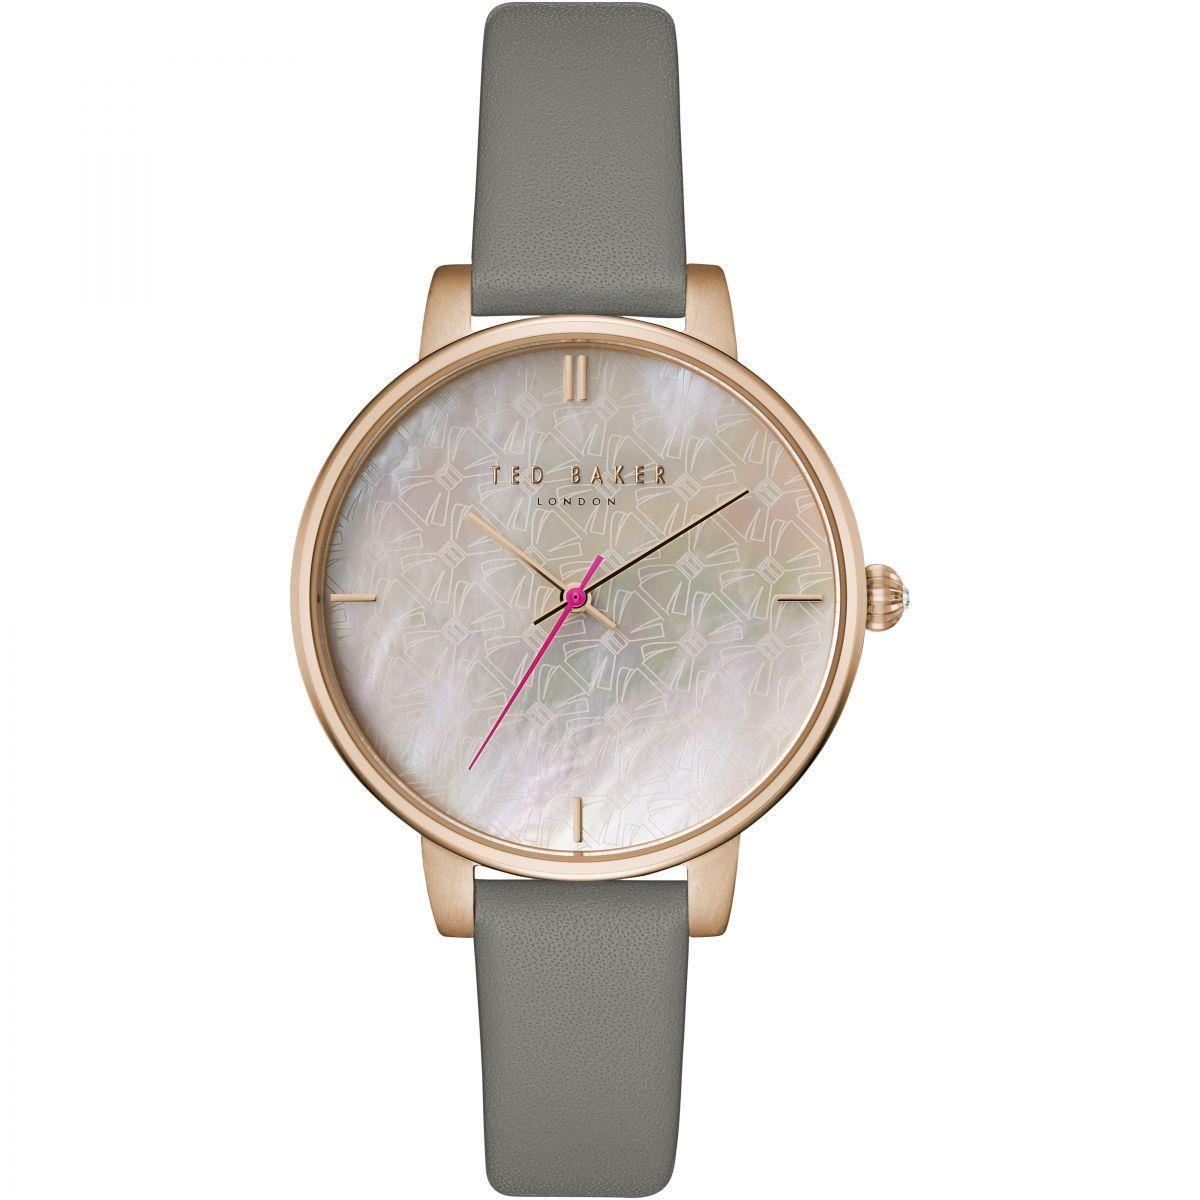 Leather Strap Rose Gold Watch Ted Baker Kate Grey Leather Strap Rose Gold Ladies Watch Tec0025002